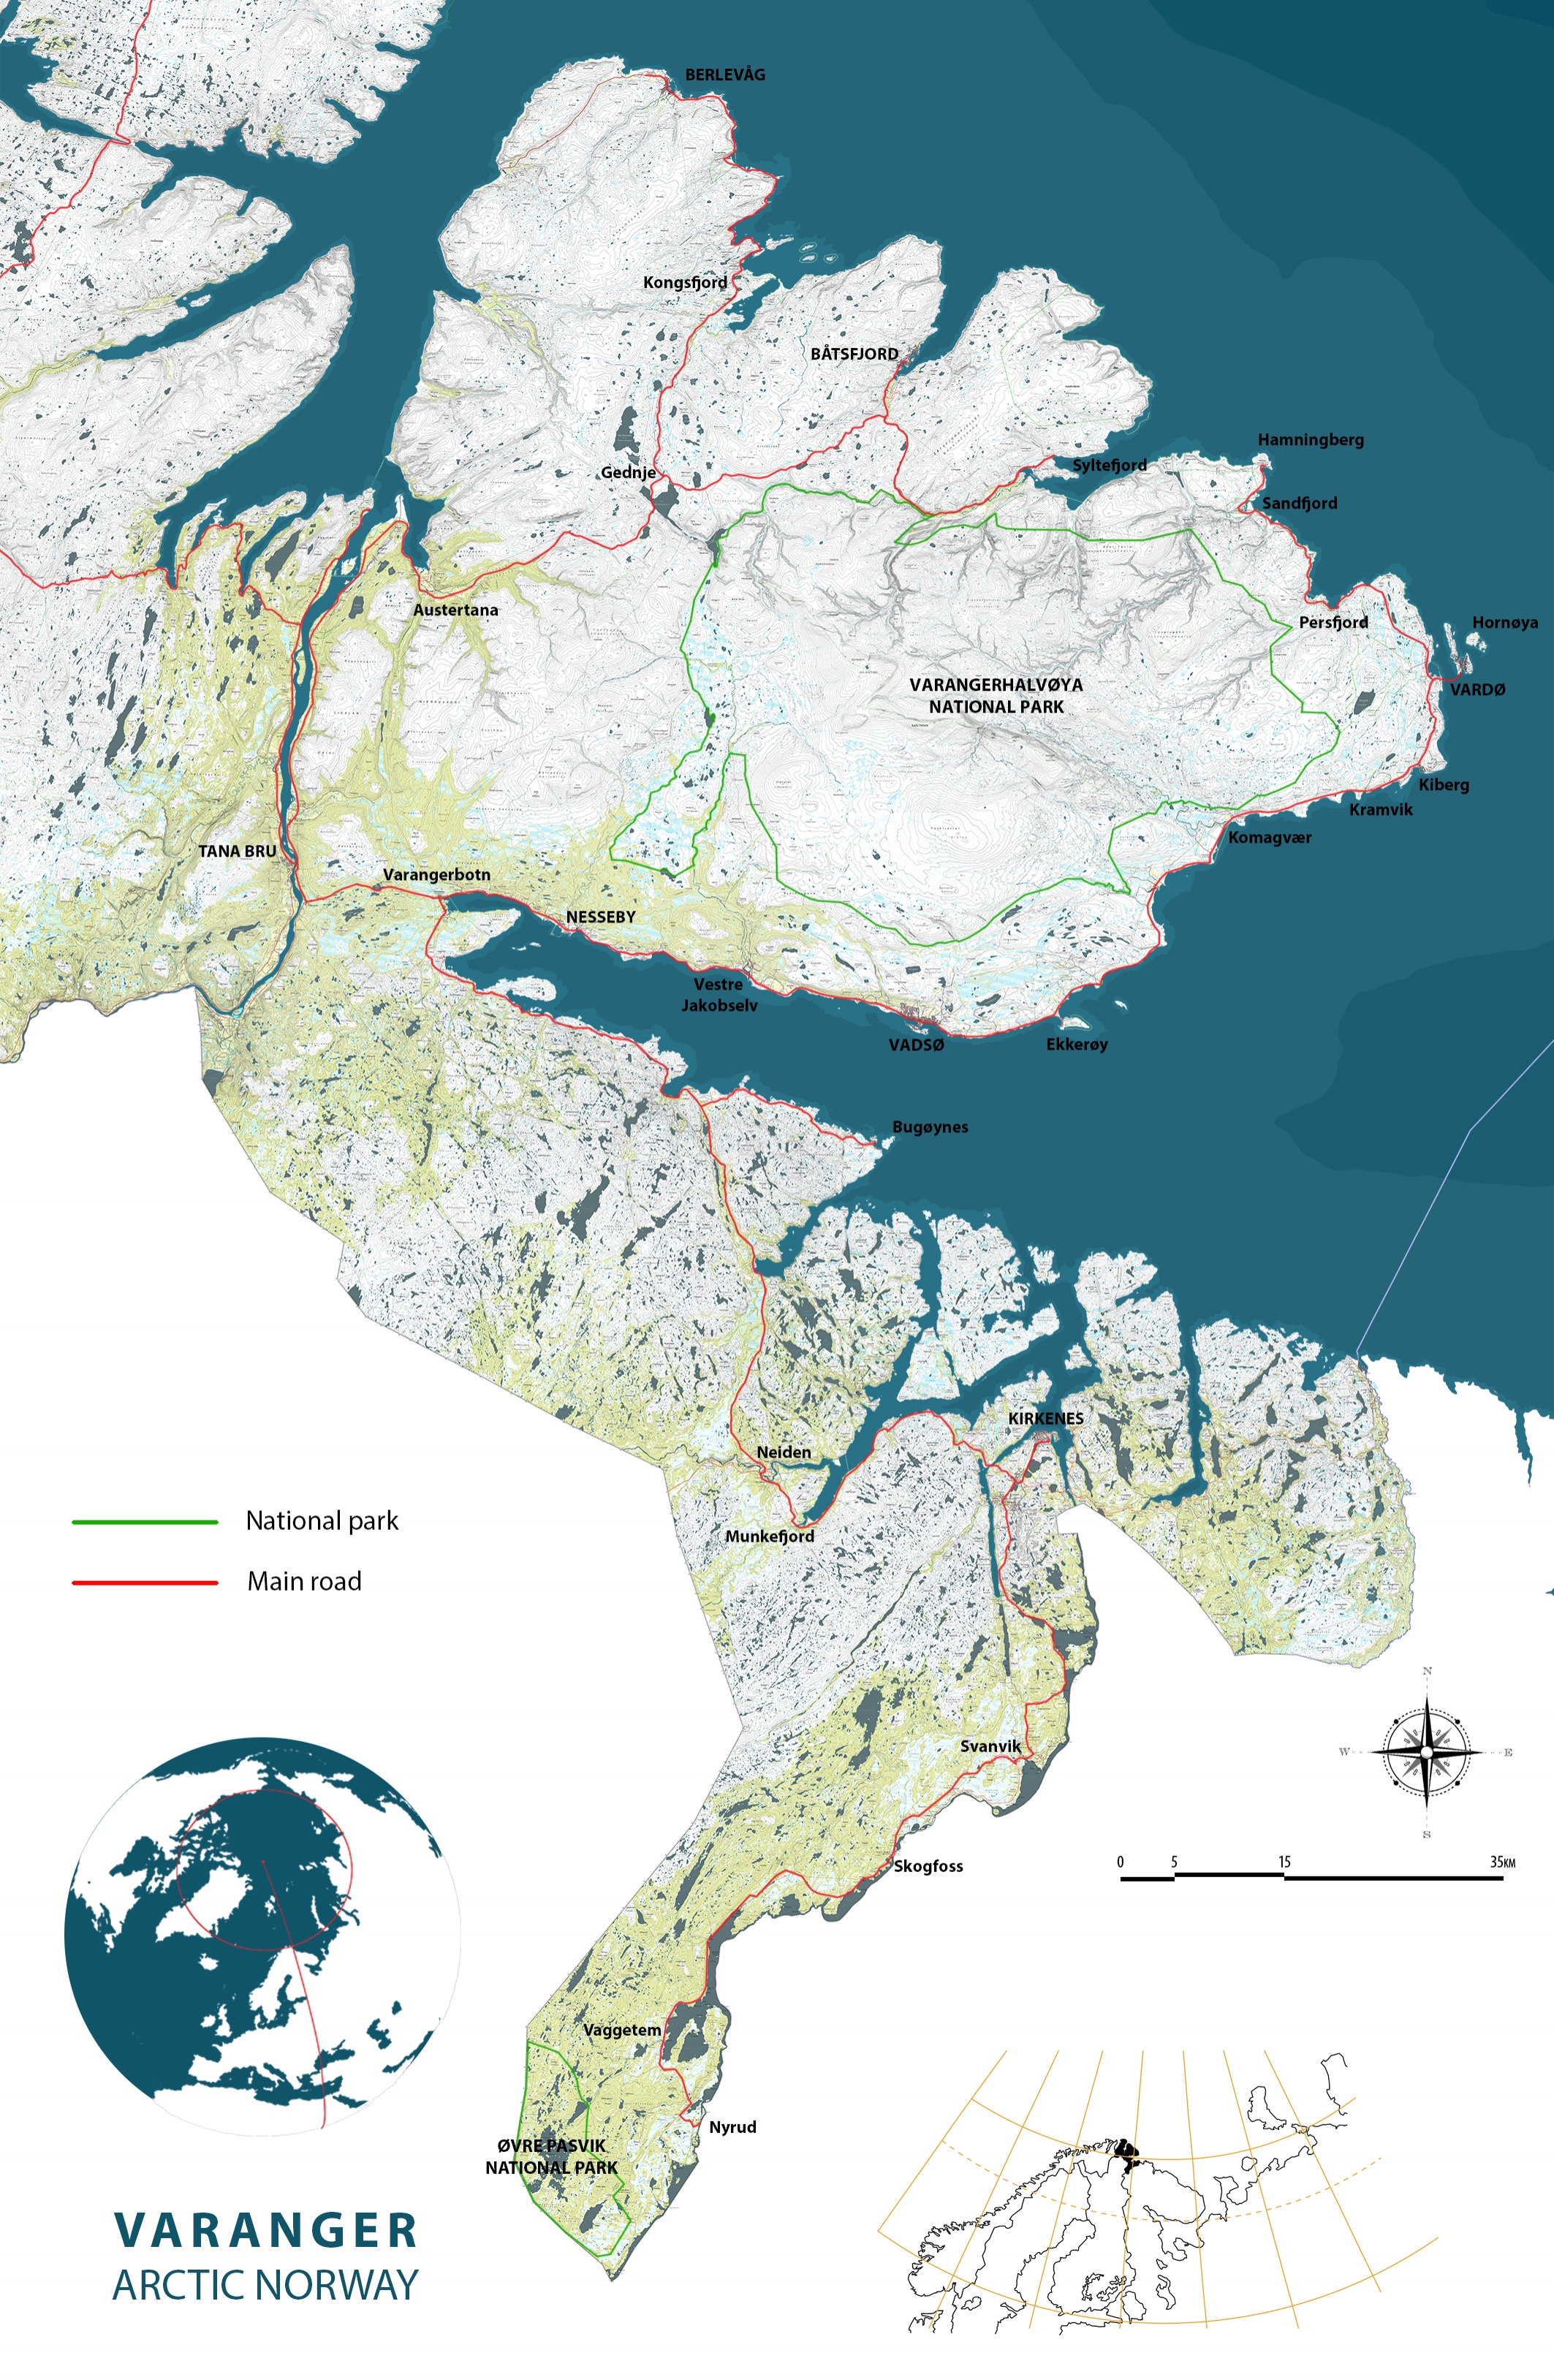 varanger map copyright biotope